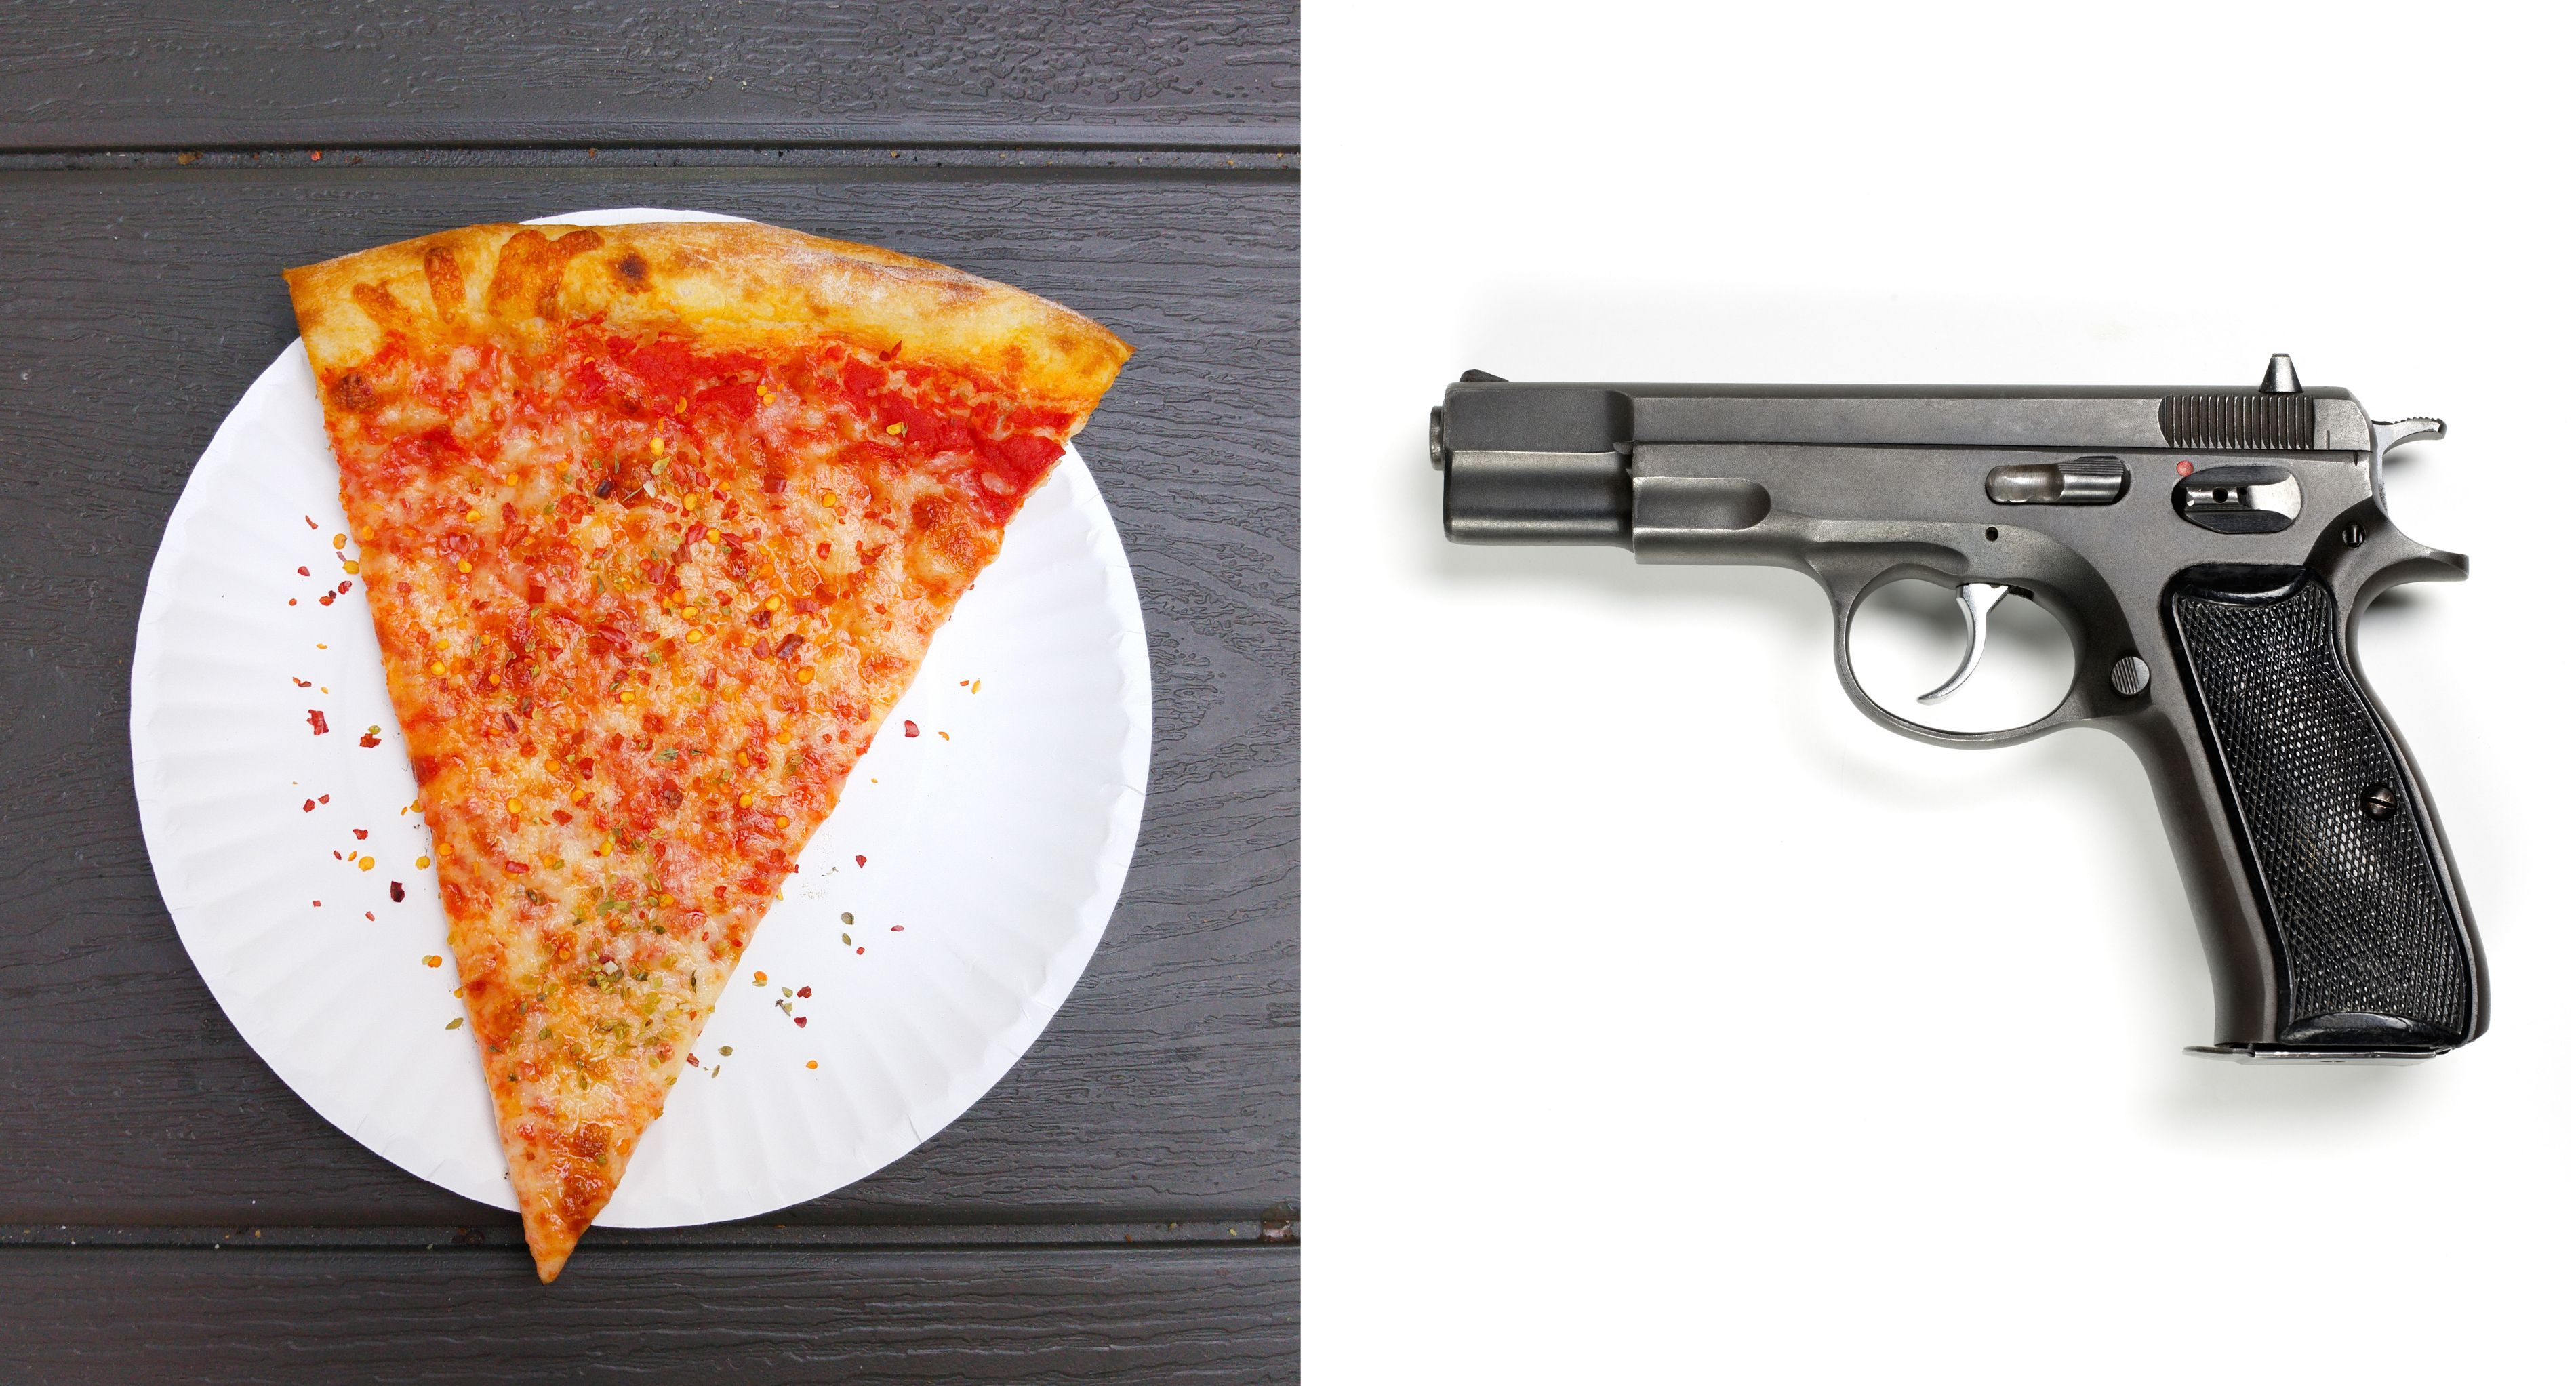 A Pizza Shop is Trading Extra-Large Pies for Guns